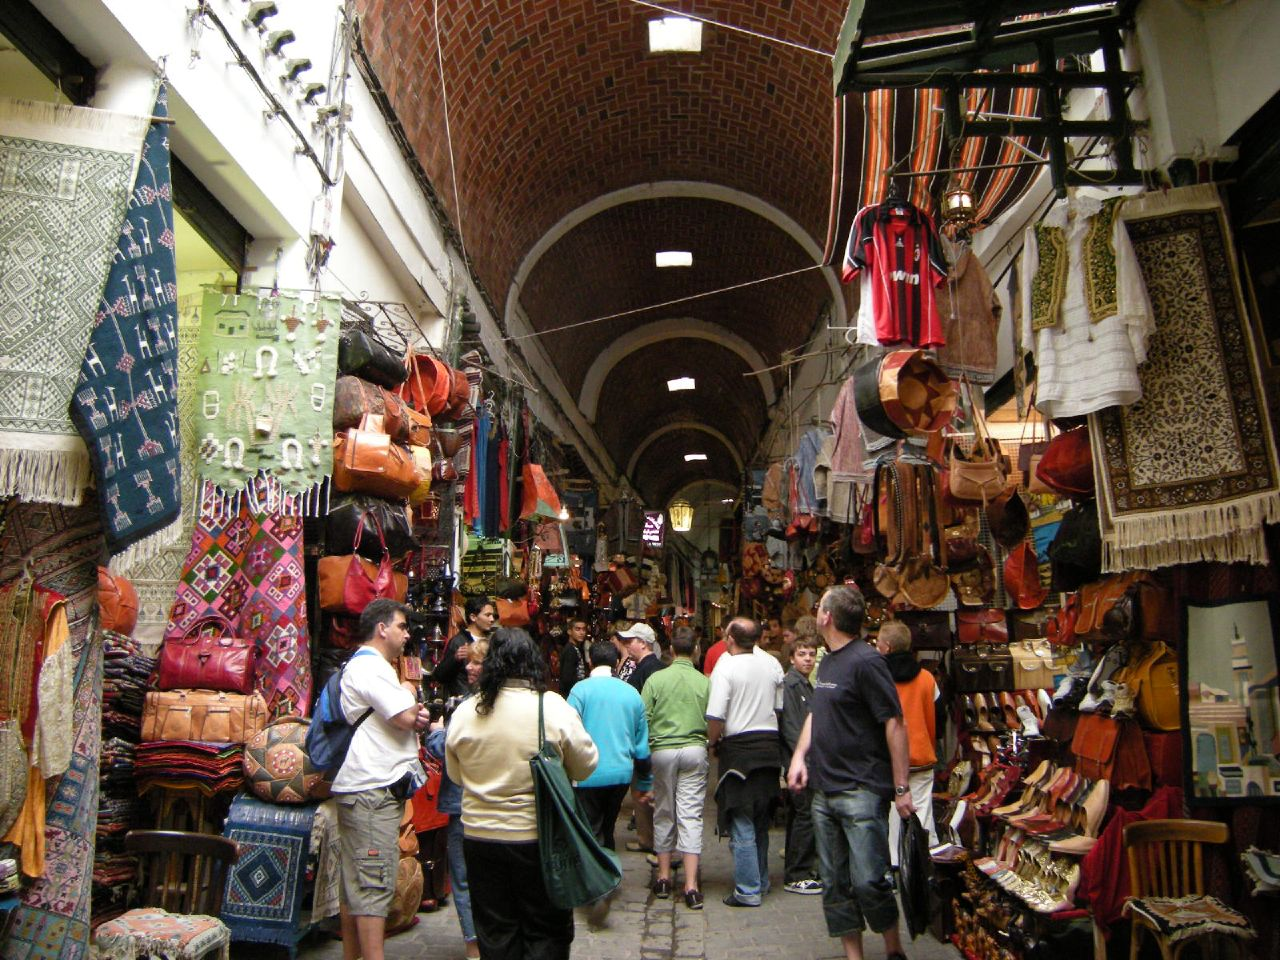 http://upload.wikimedia.org/wikipedia/commons/2/2a/Souk_of_Tunis.jpg